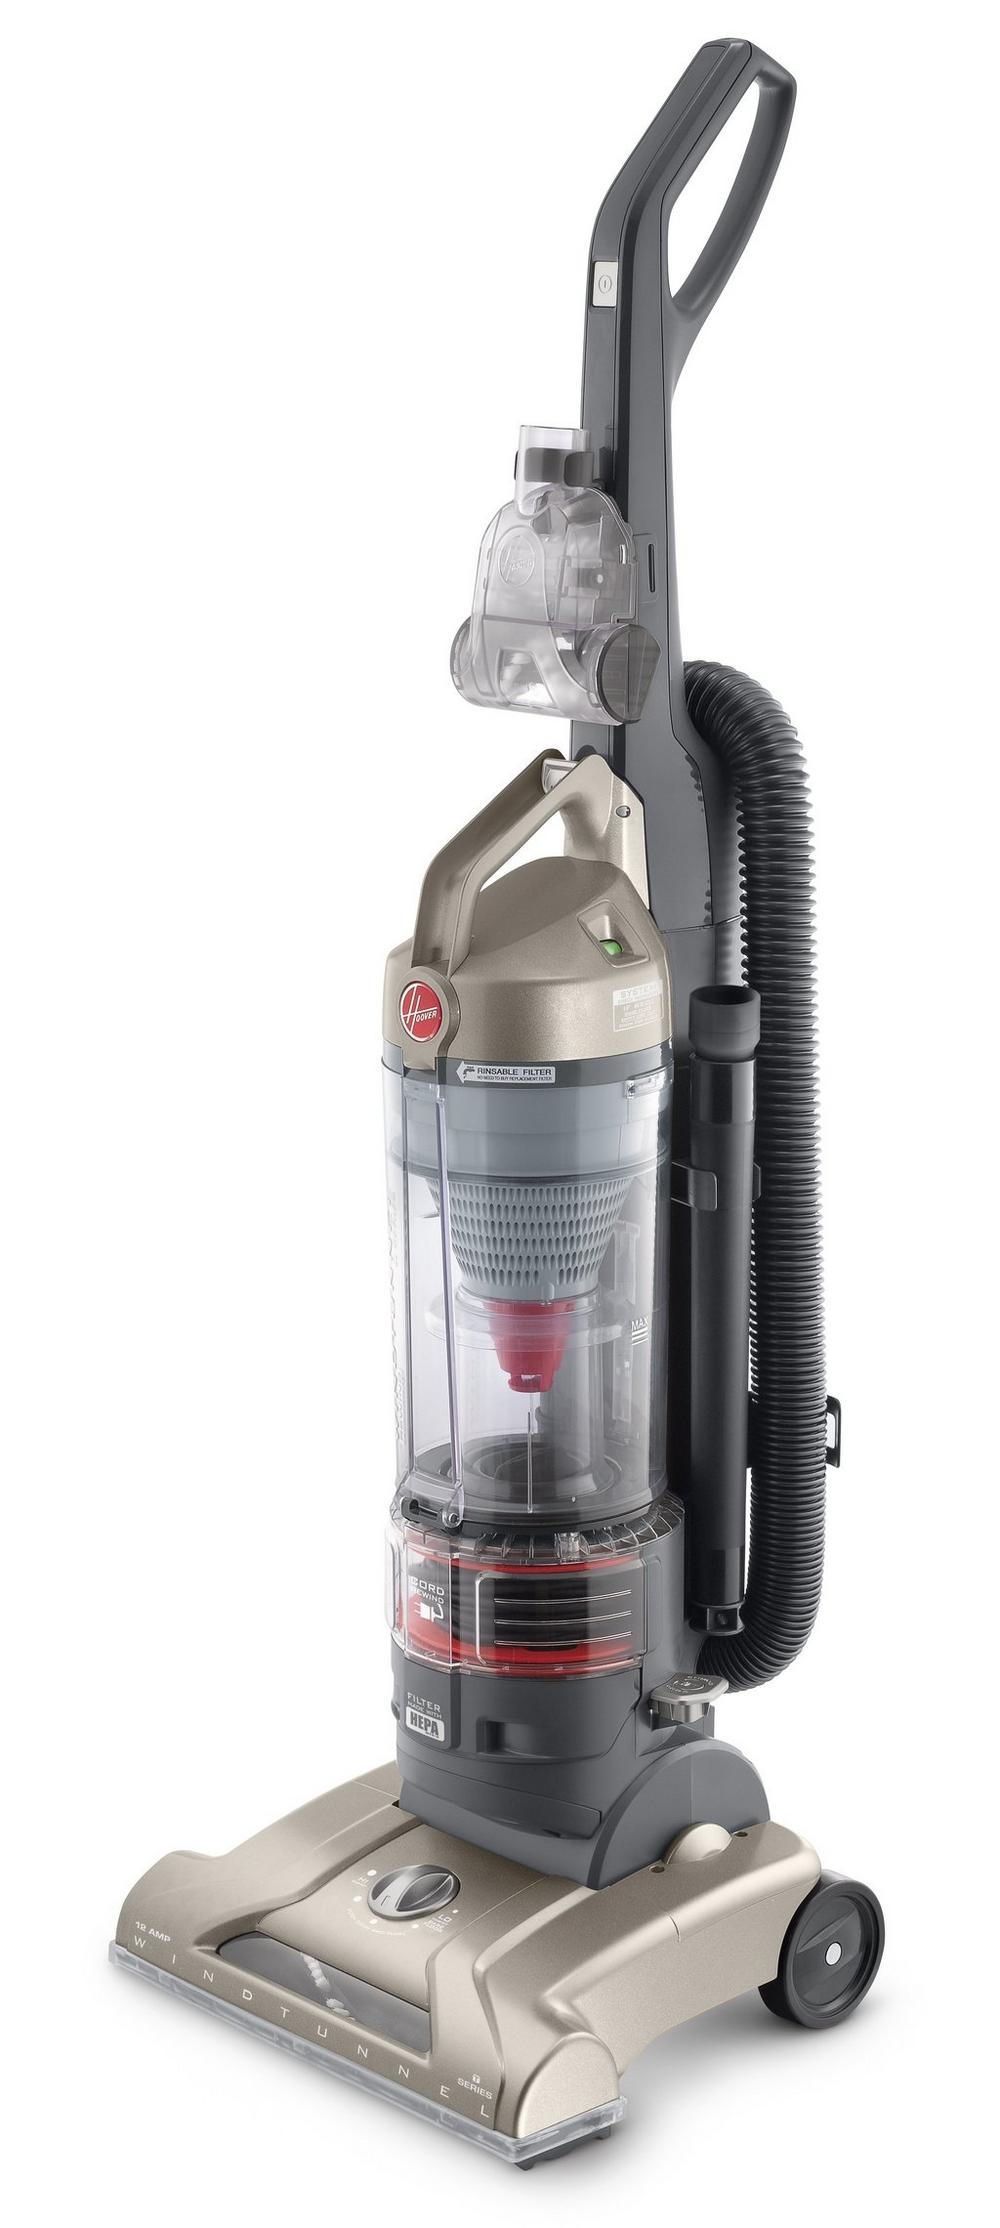 Reconditioned WindTunnel T1-Series Rewind Upright Vacuum2